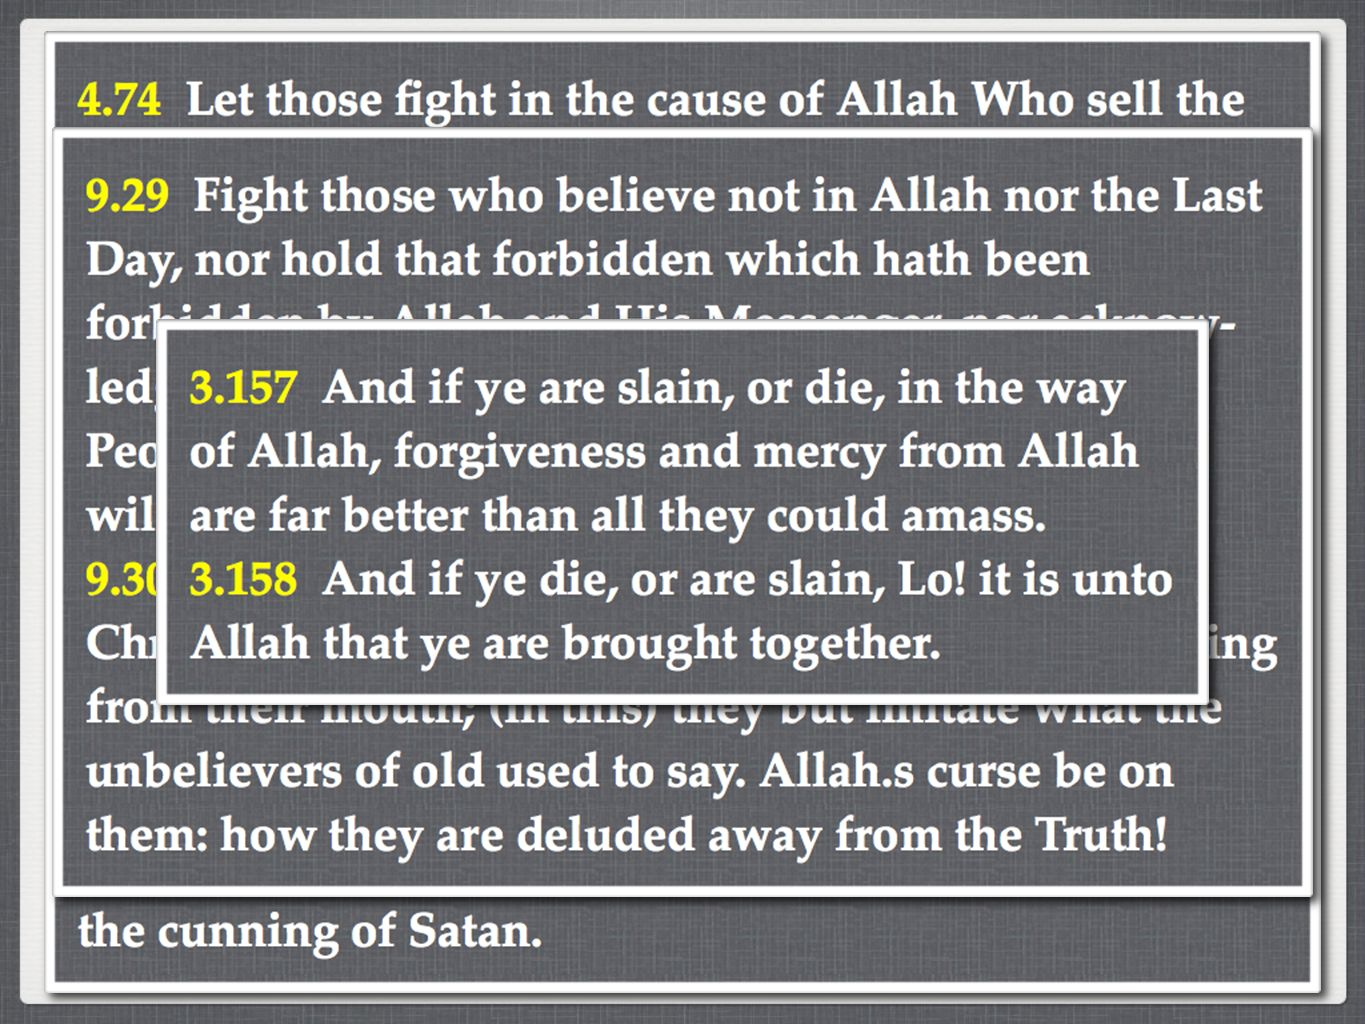 The Rise Of Militant Islam Muhammad not only endorsed the sword, he also used one The Qur'an contains 64 specific calls to fight against the Jew and the Christian Not all Muslims believe in the use of deadly force